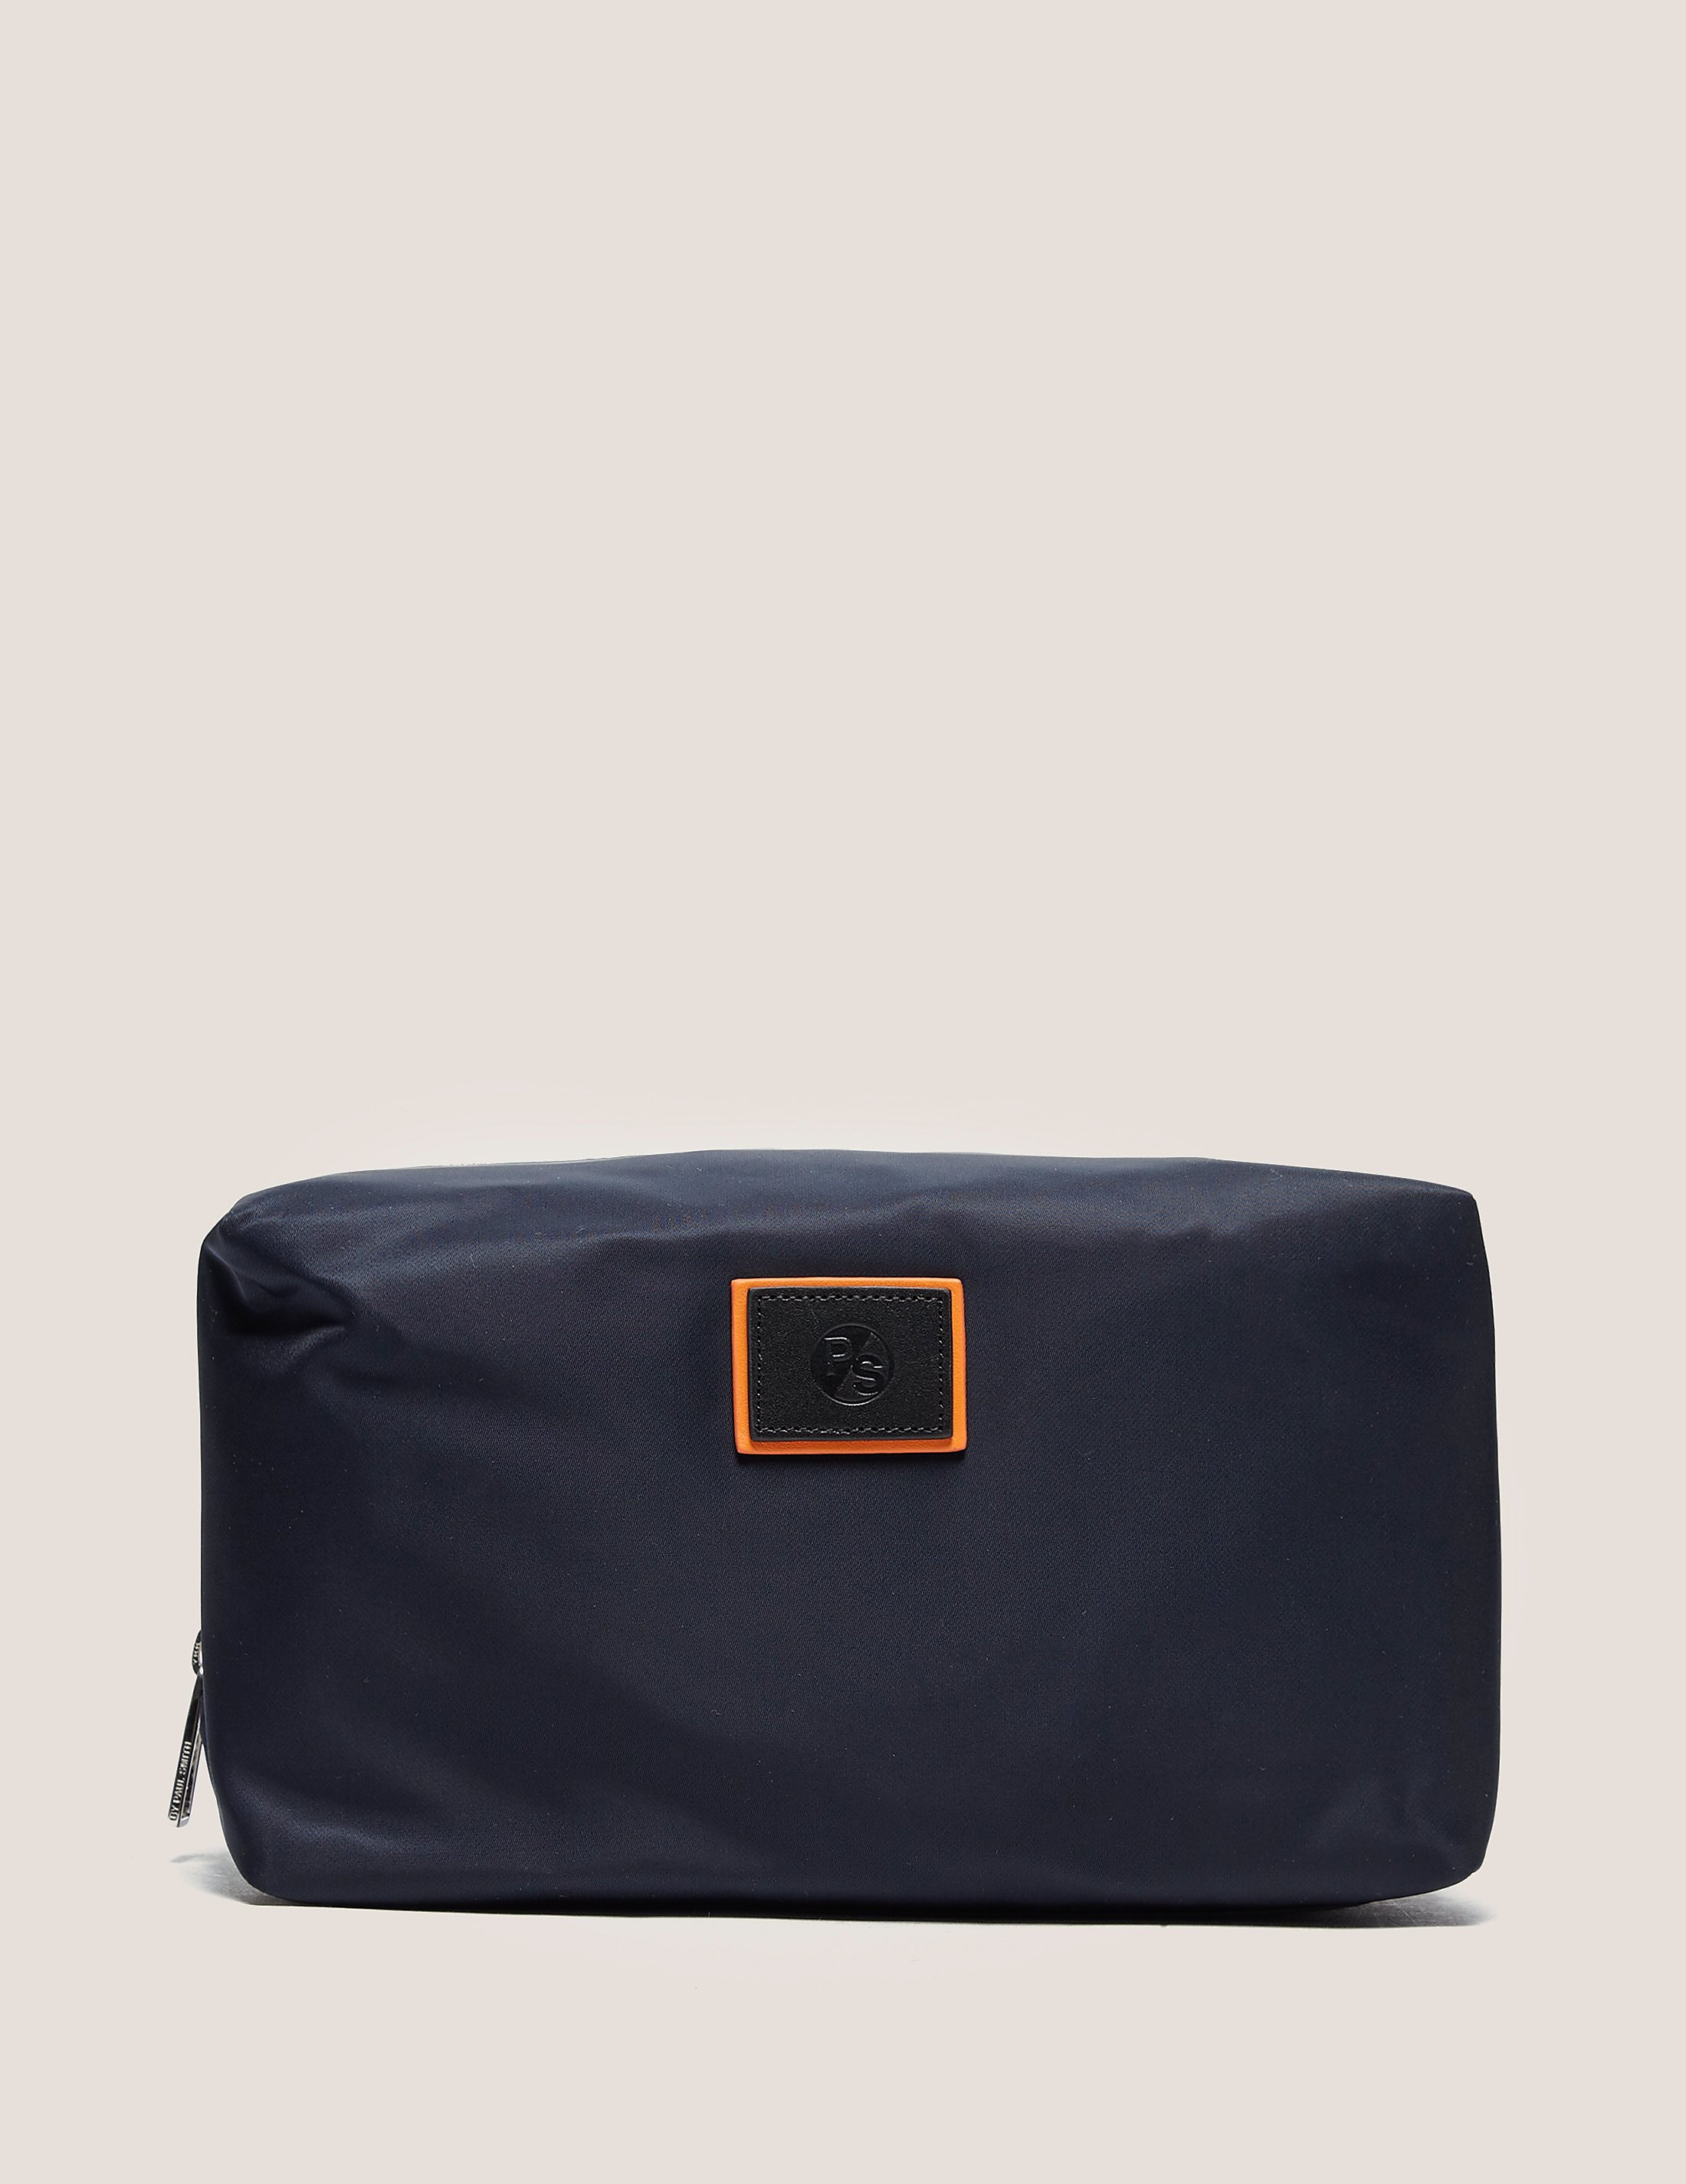 Paul Smith Wash Bag